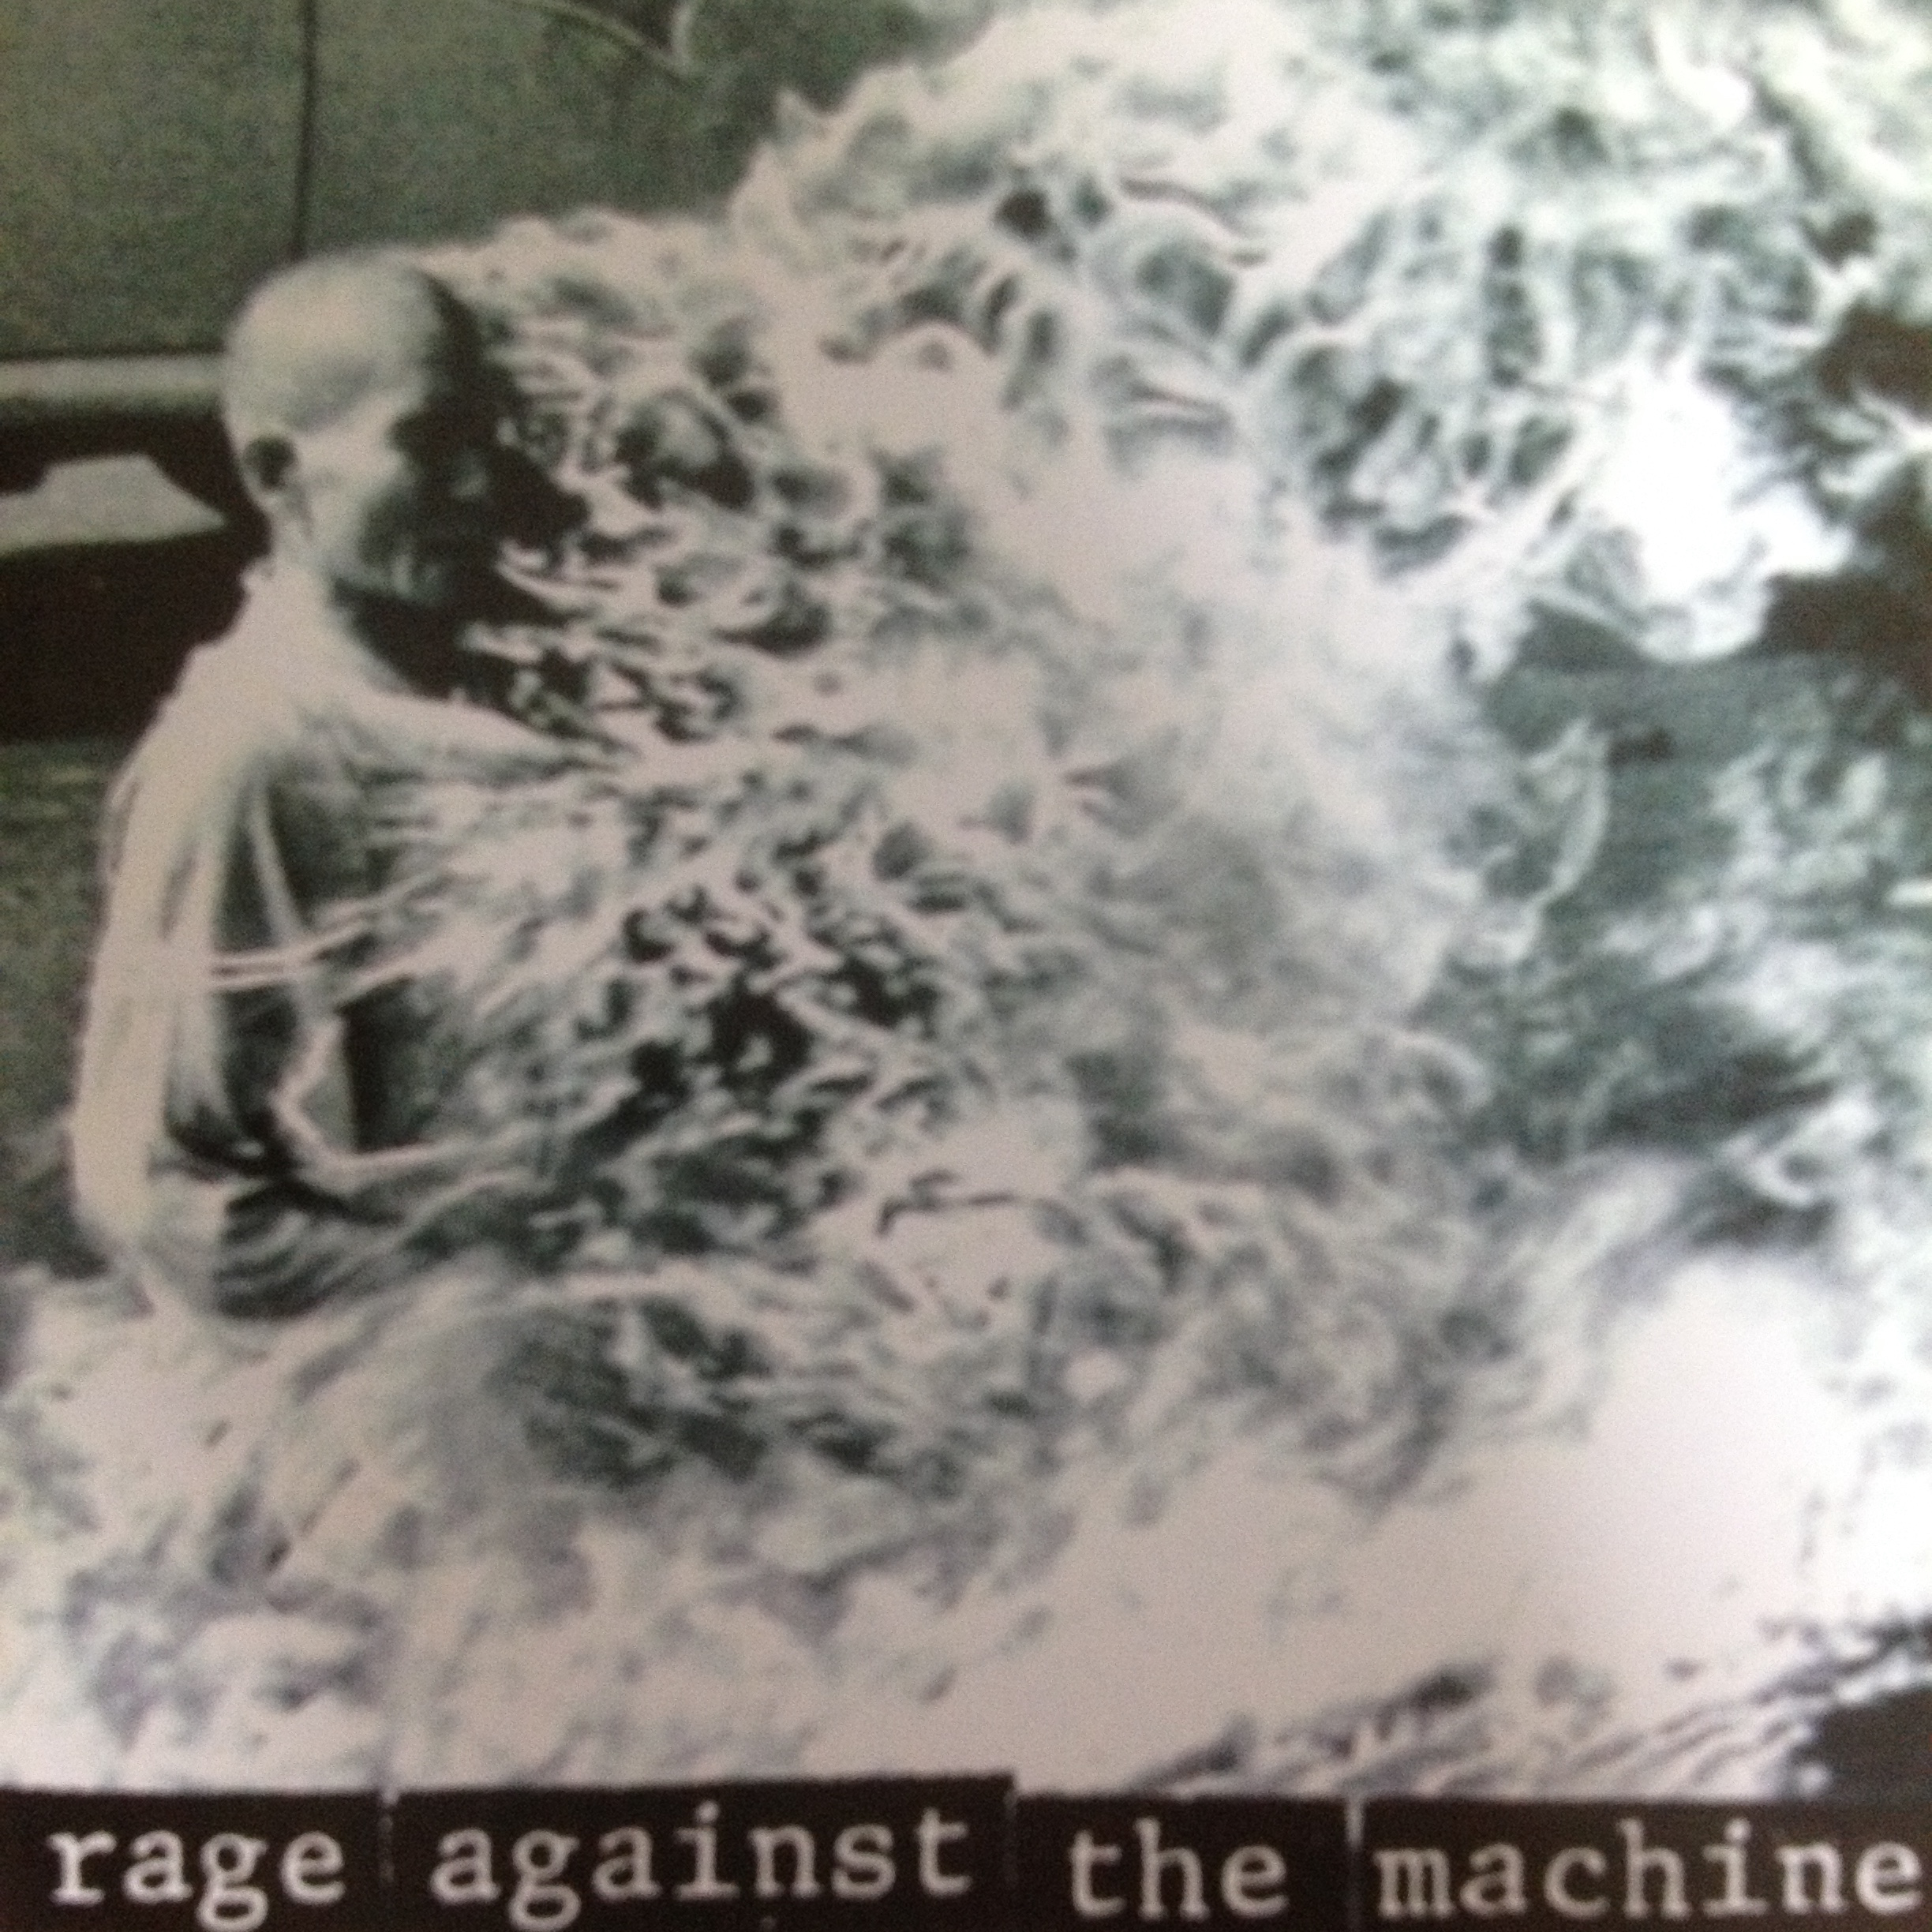 THE RAGE AGAINST THE MACHINE 「KILLING IN THE NAME」